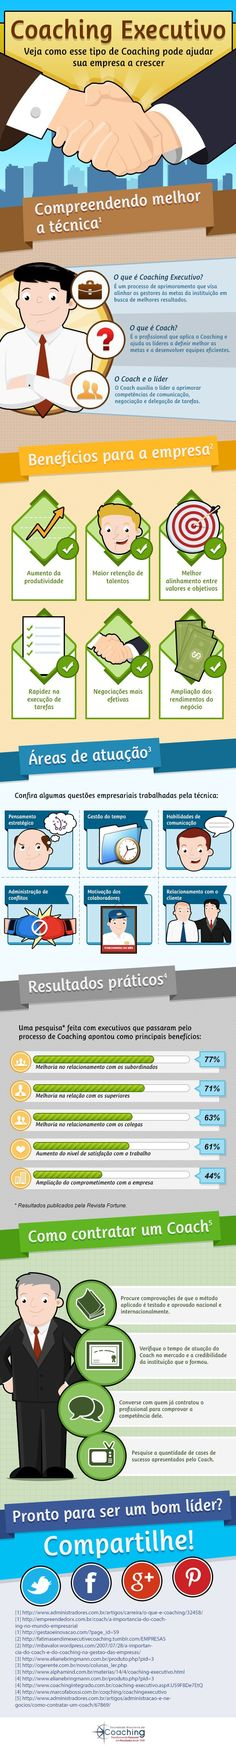 Infográfico Coaching Executivo